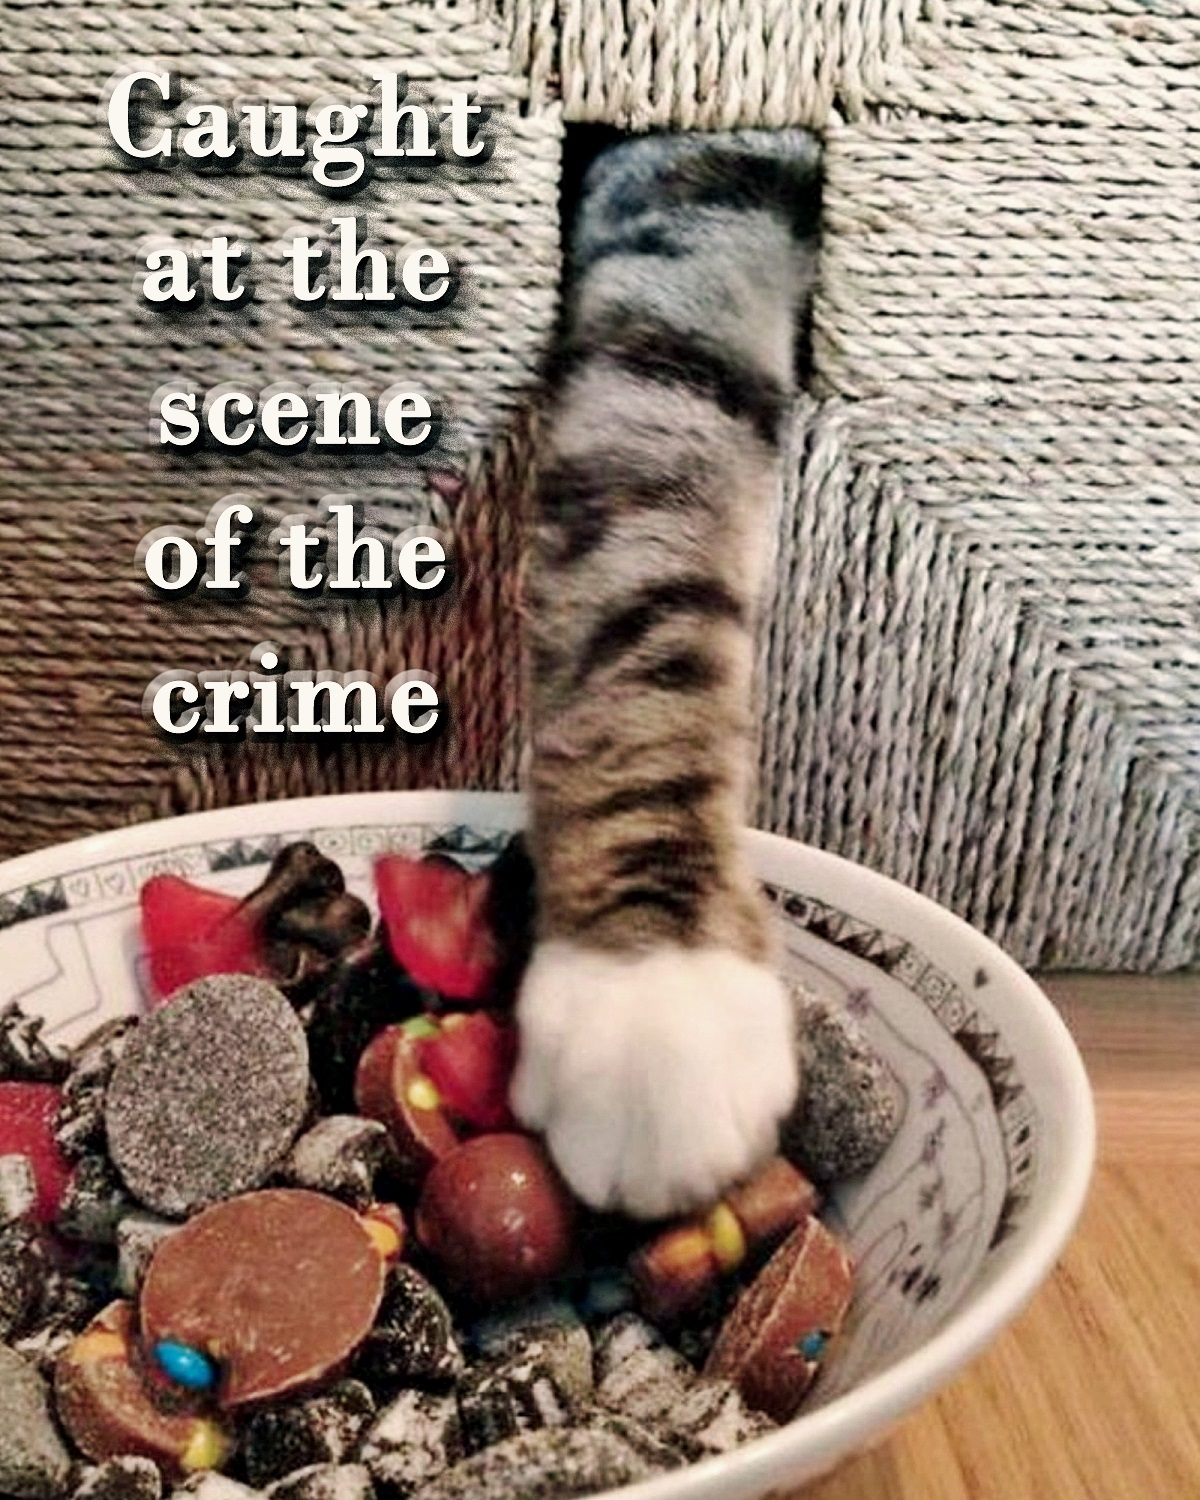 00 cat at the scene of the crime 070416